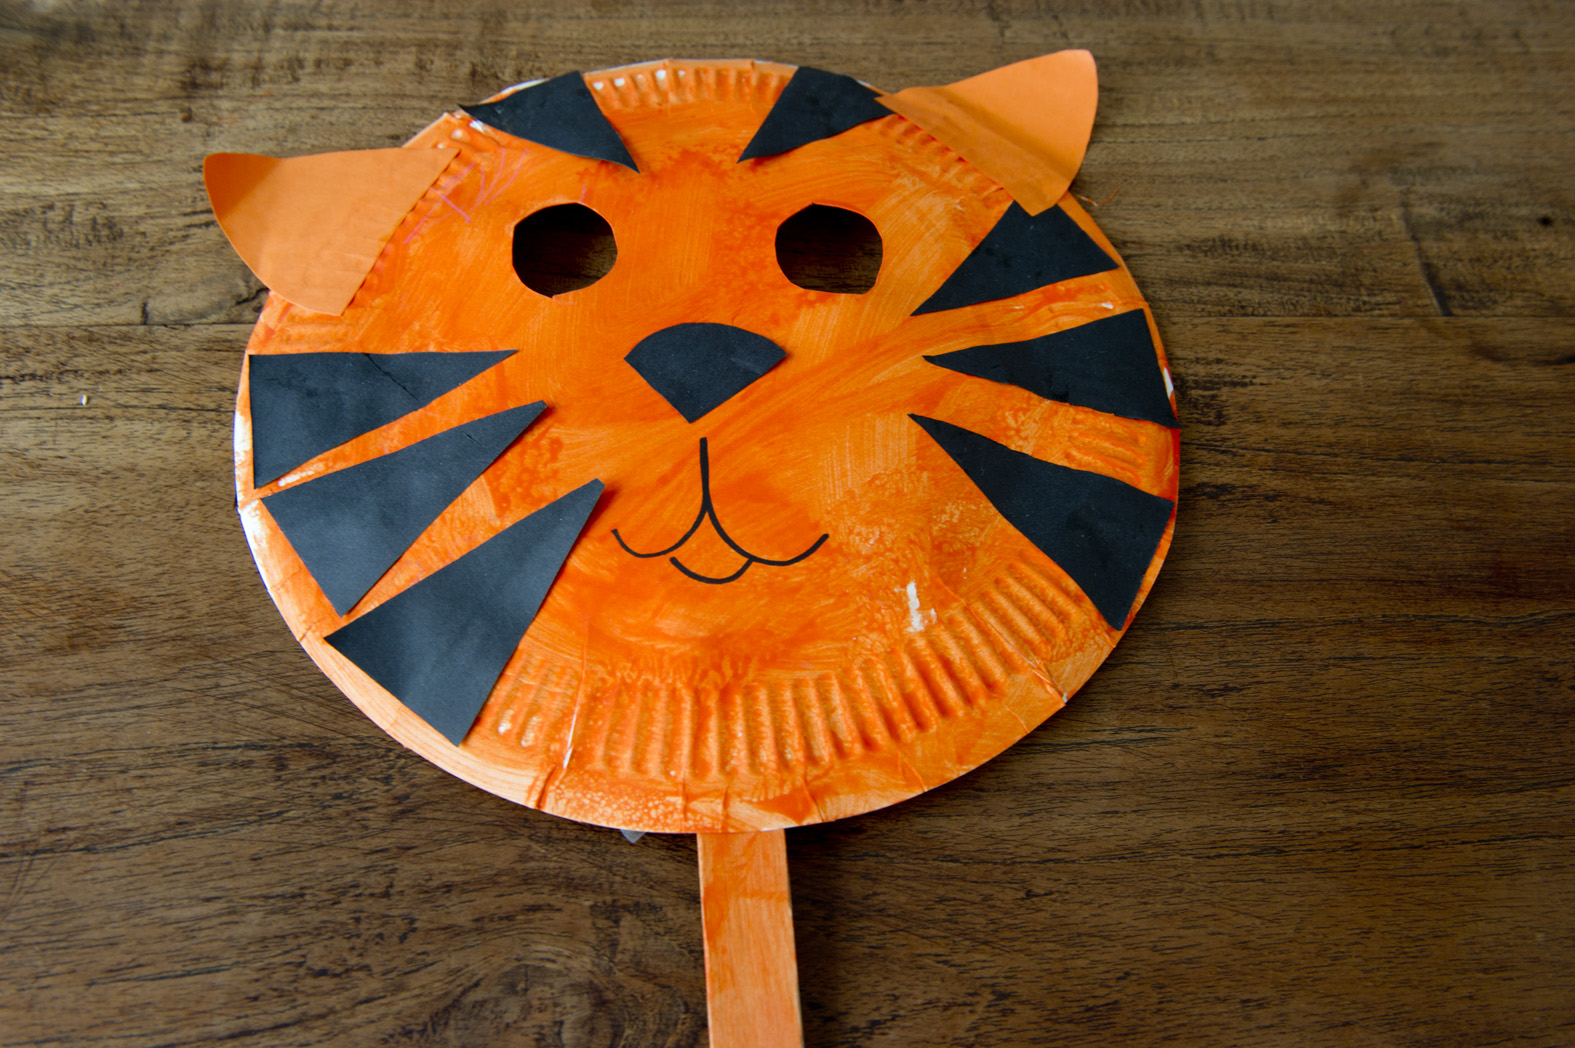 White paper plates. Penknife Orange paint u0026 paint brushes. Craft sticks or ice cream sticks. Scissors One sheet of black construction paper & Craft for Kids: Tiger Mask | The Little Singapore Book Companion